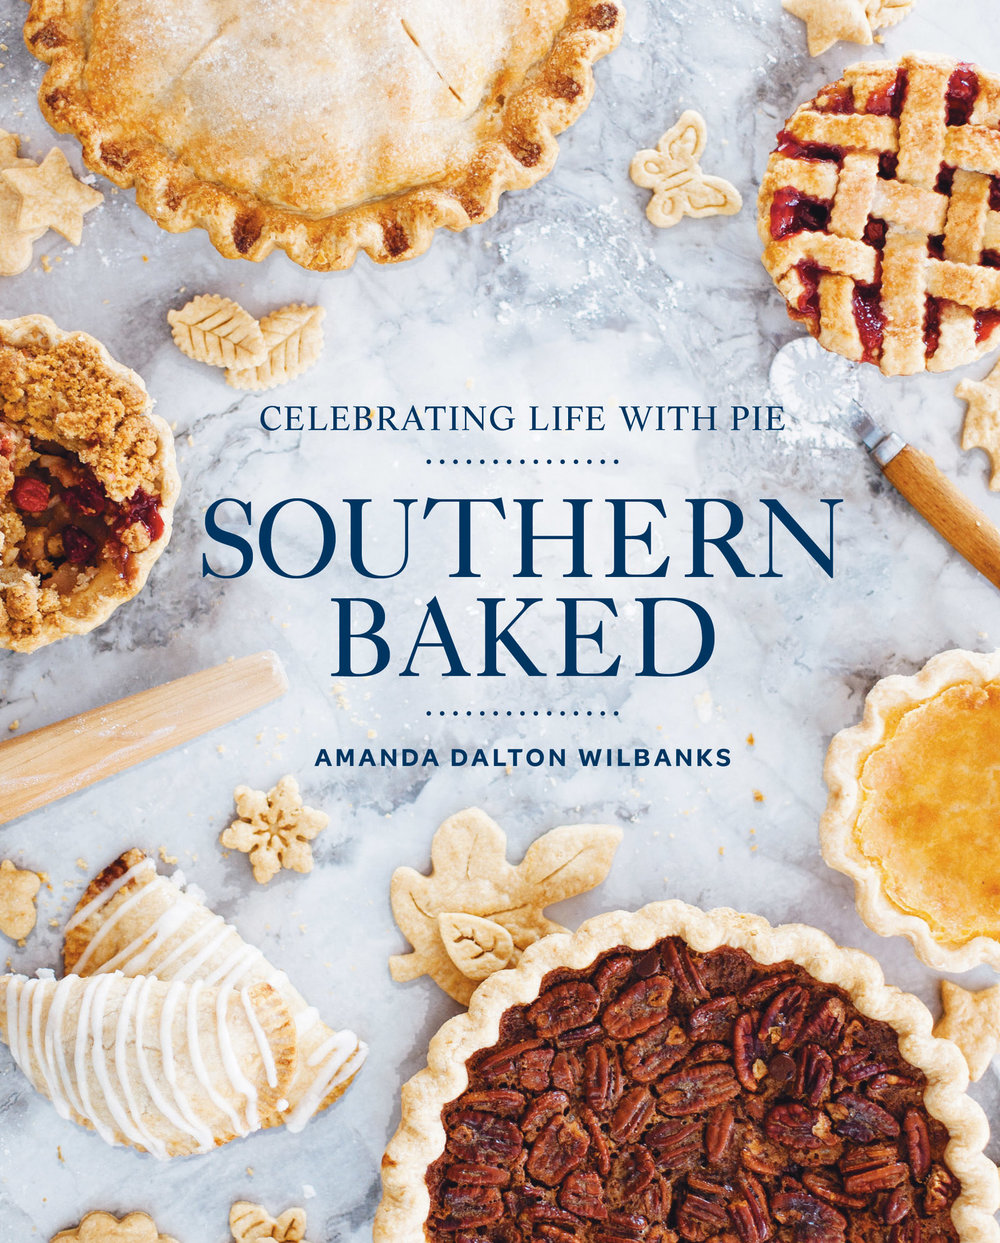 9781423648987_Southern Baked Cover.jpg